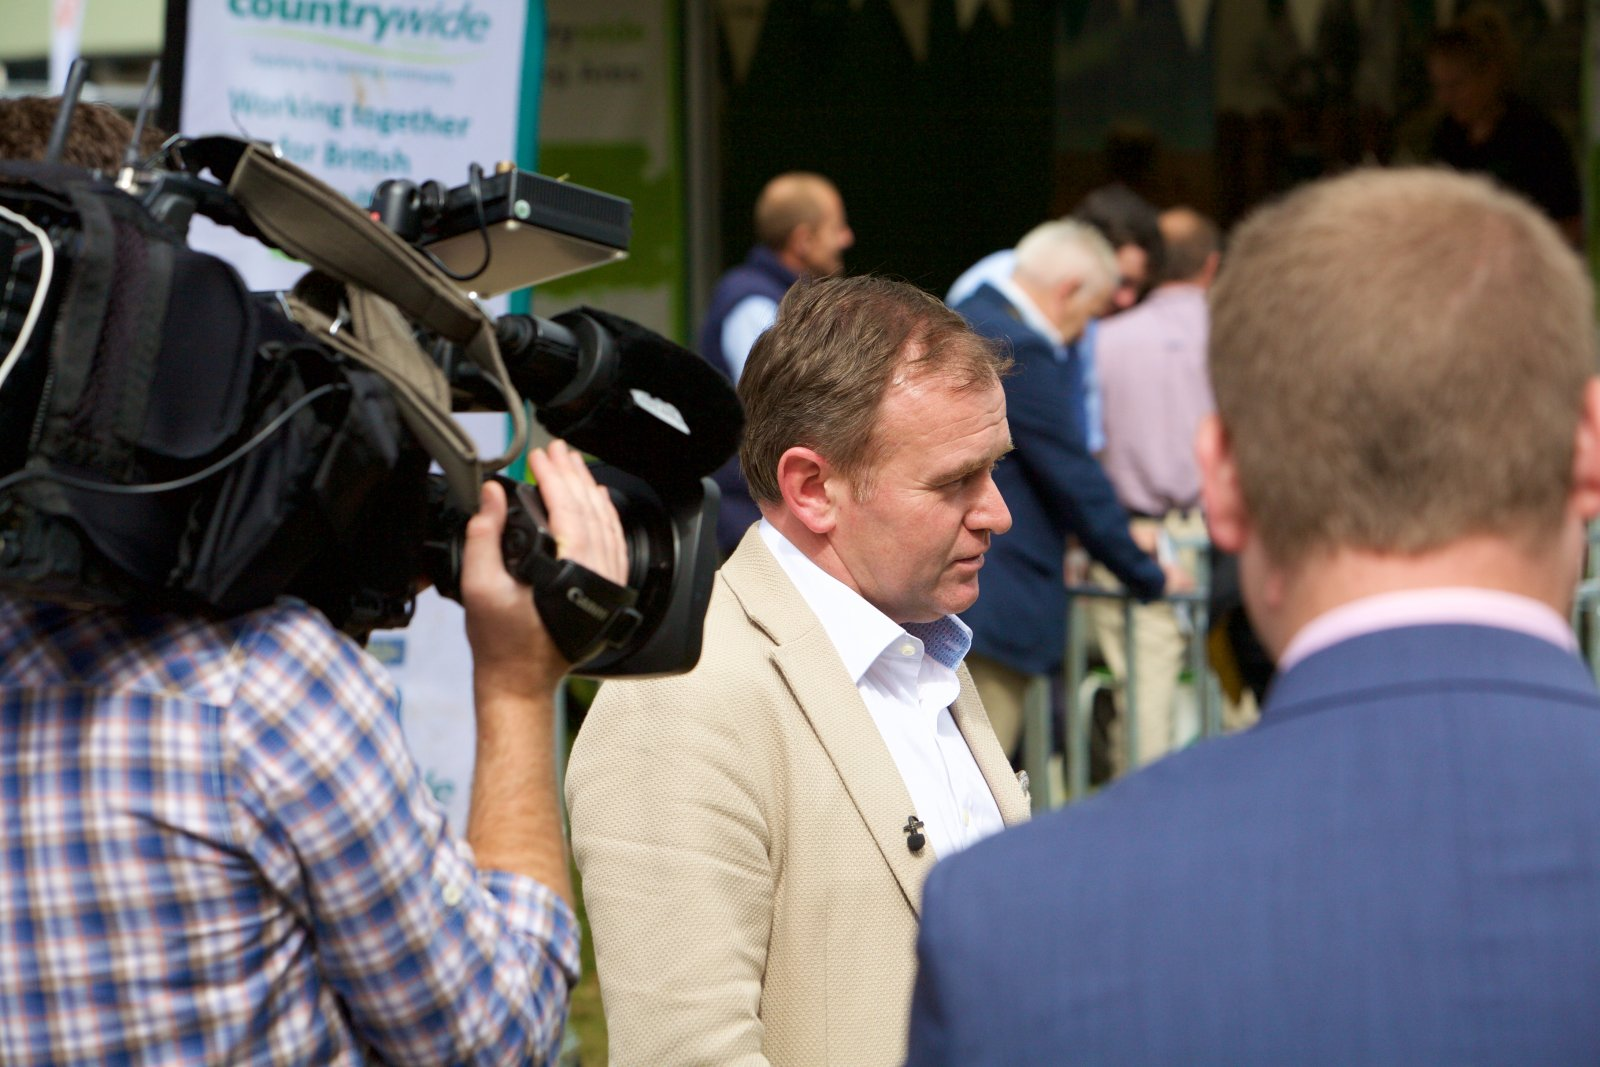 Farming minister George Eustice welcomed visitors to NSA Sheep 2016